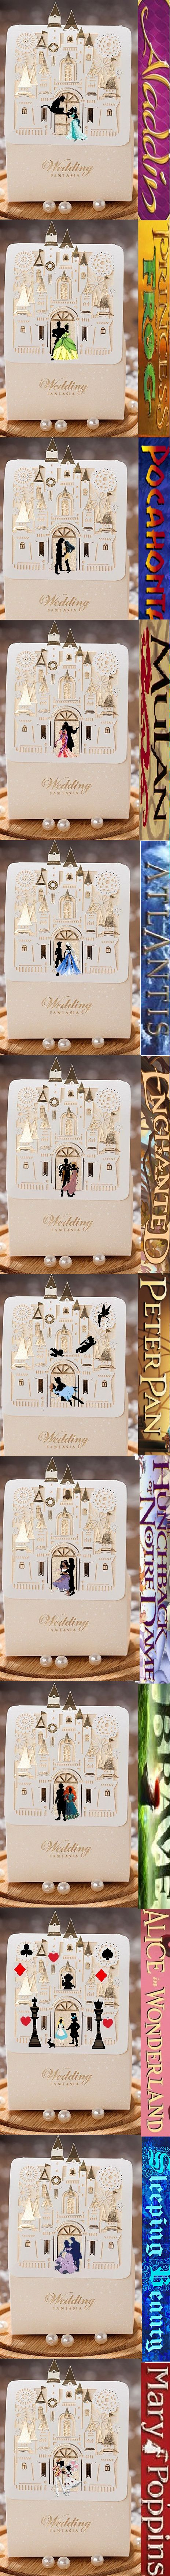 These candy boxes come in sets of 50 per order. They are part of a personalized Disney princess ongoing series. More options to come! They add the perfect inexpensive touch for your fairytale wedding table décor plus gift for your guests.  Now you can get the entire series in one order. Just leave a message for the seller for a custom order.